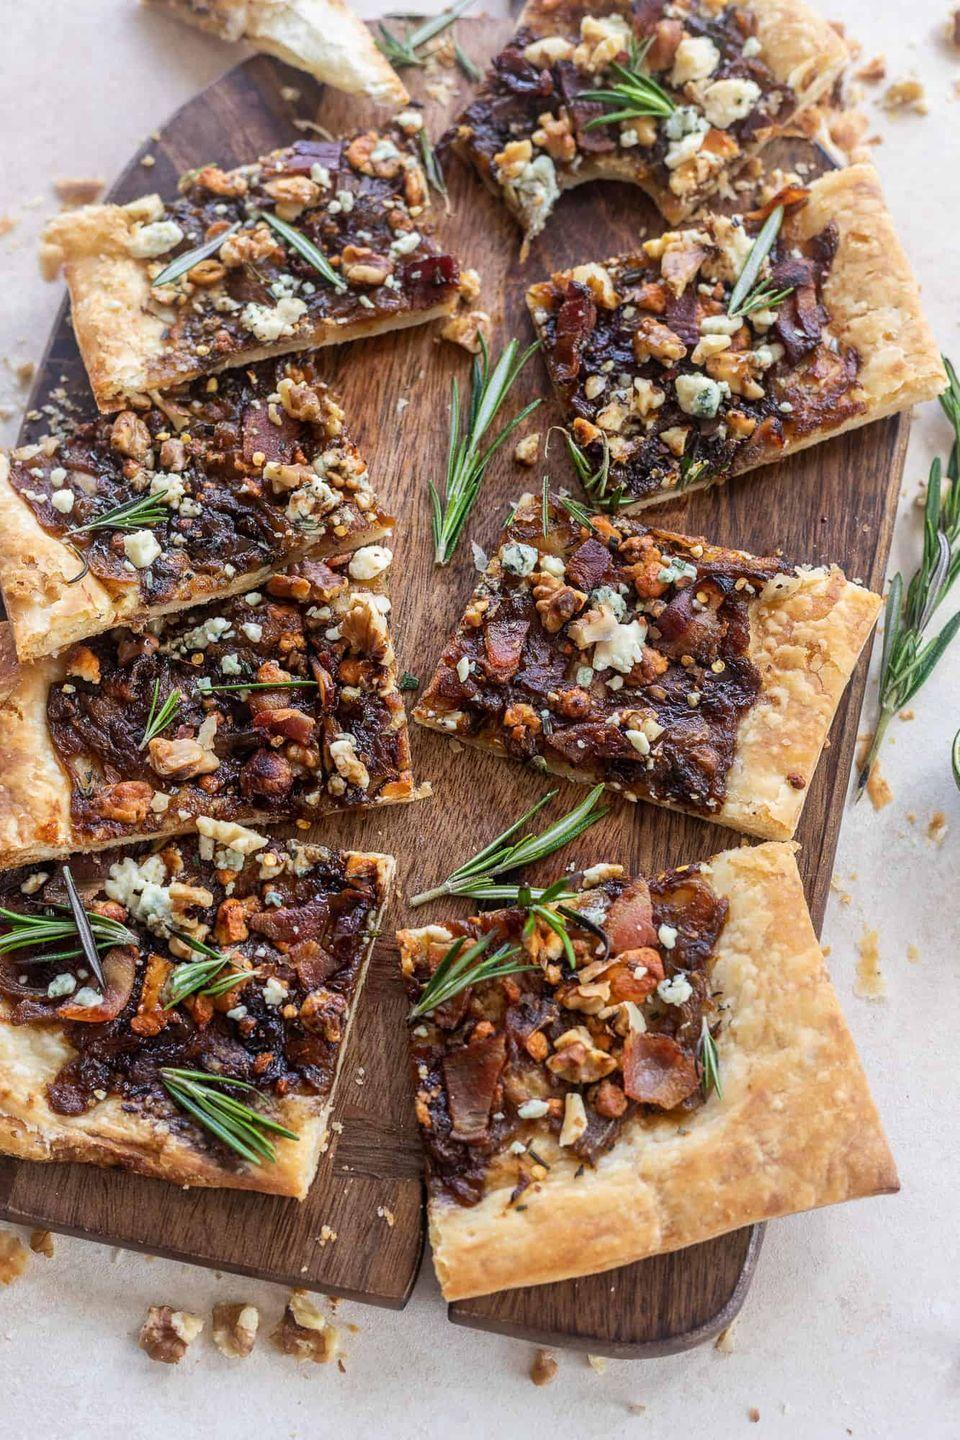 """<p>This recipe calls for homemade puff pastry (a fun holiday baking project you might want to try!), but if you're short on time, you can always use store-bought puff pastry, too. </p><p><strong>Get the recipe at <a href=""""https://britneybreaksbread.com/caramelized-onion-puff-pastry-with-bacon-and-gorgonzola/"""" rel=""""nofollow noopener"""" target=""""_blank"""" data-ylk=""""slk:Britney Breaks Bread"""" class=""""link rapid-noclick-resp"""">Britney Breaks Bread</a>.</strong></p>"""